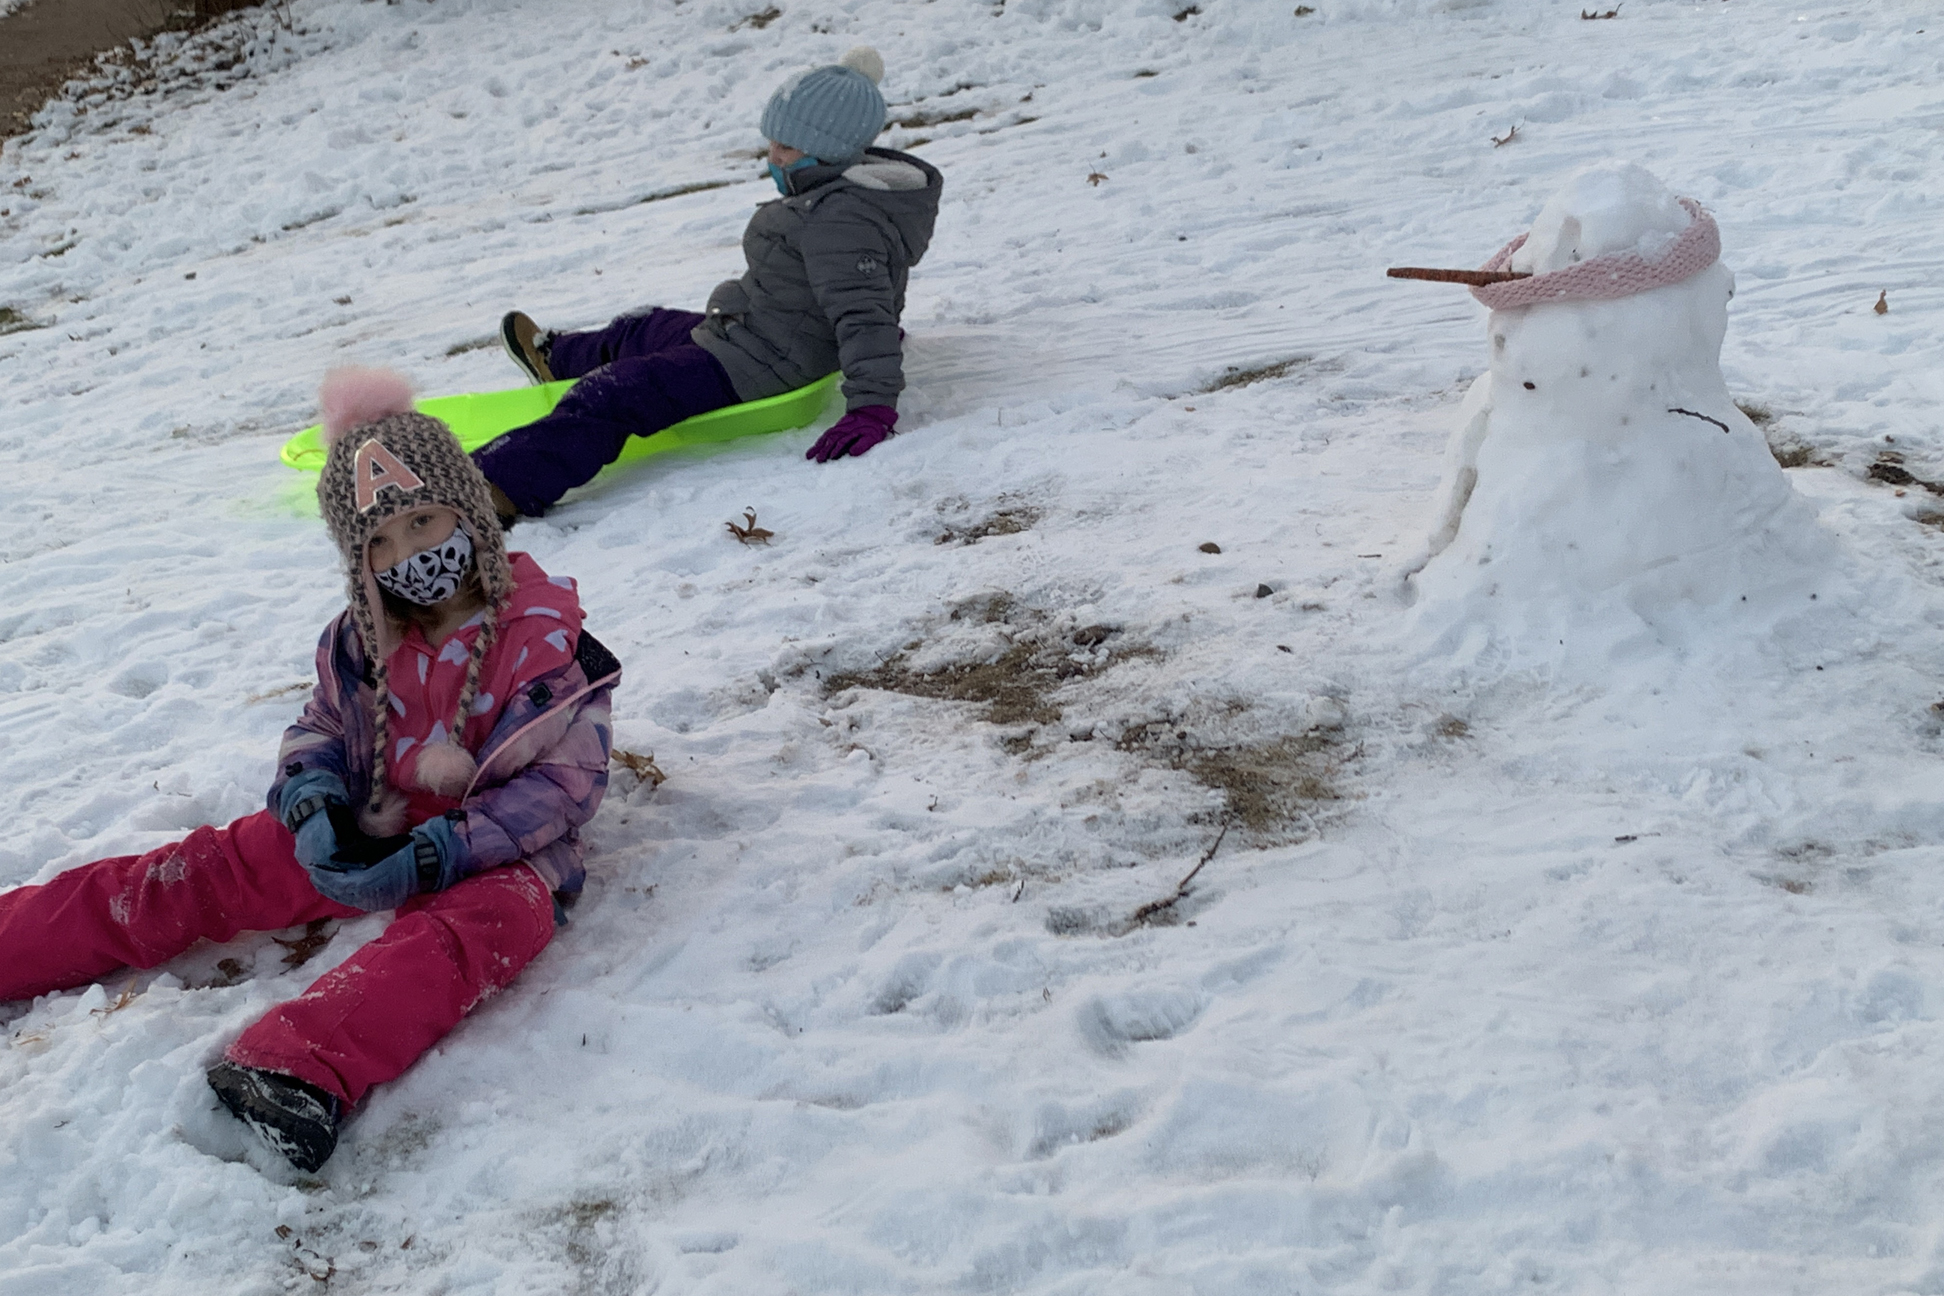 Two children playing in the snow near a snowman.